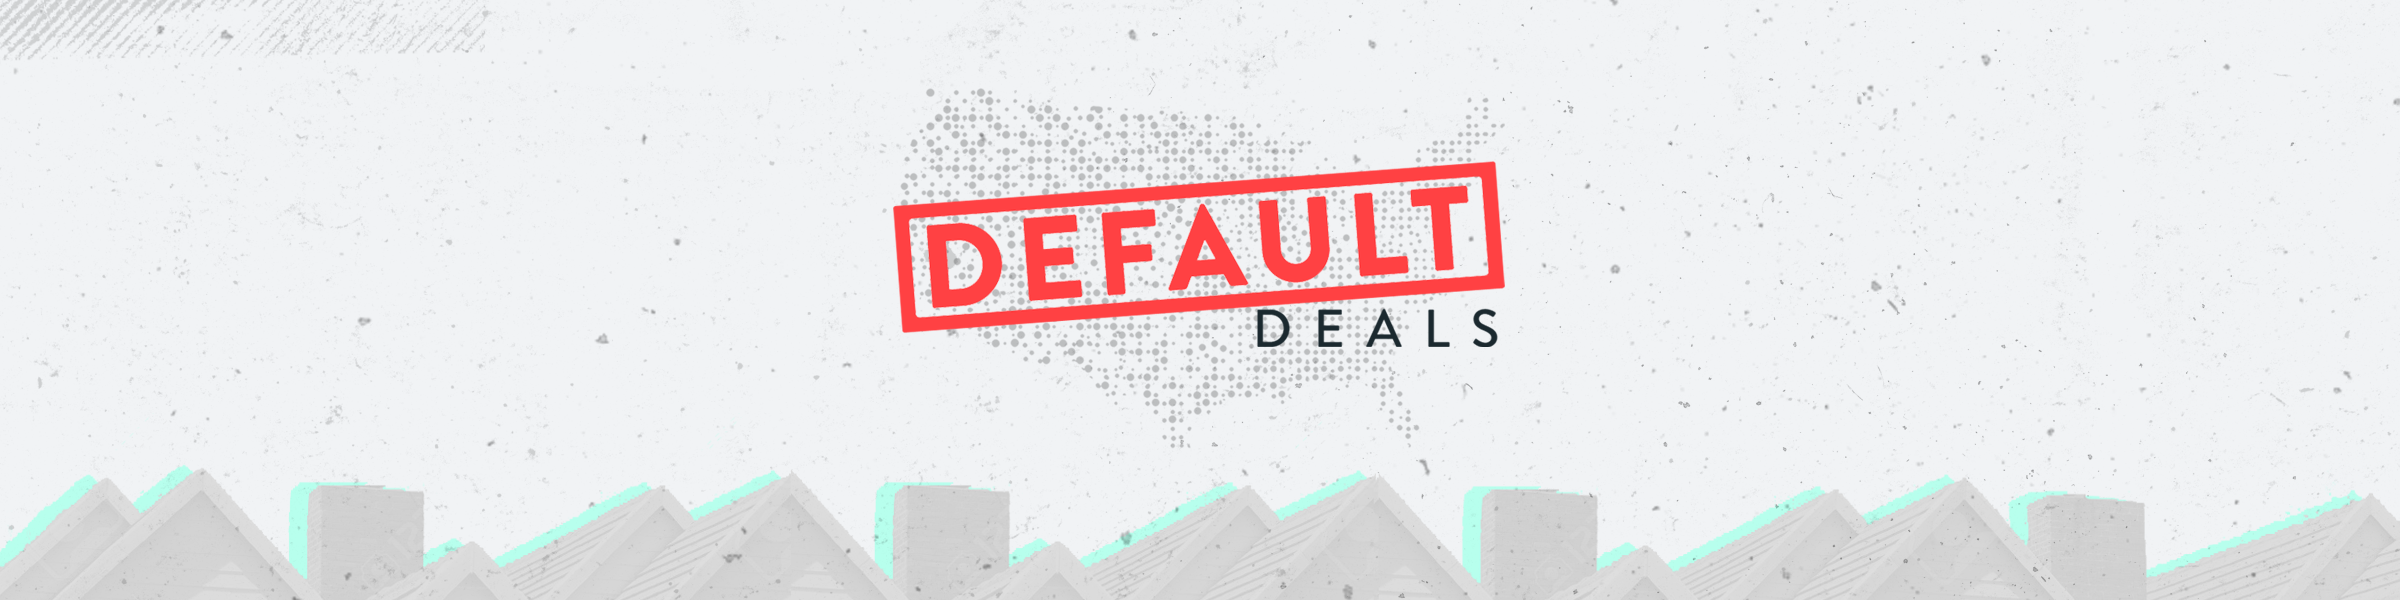 "Announcing: ""Default Deals"" by Peter Vekselman & Julie Muse"